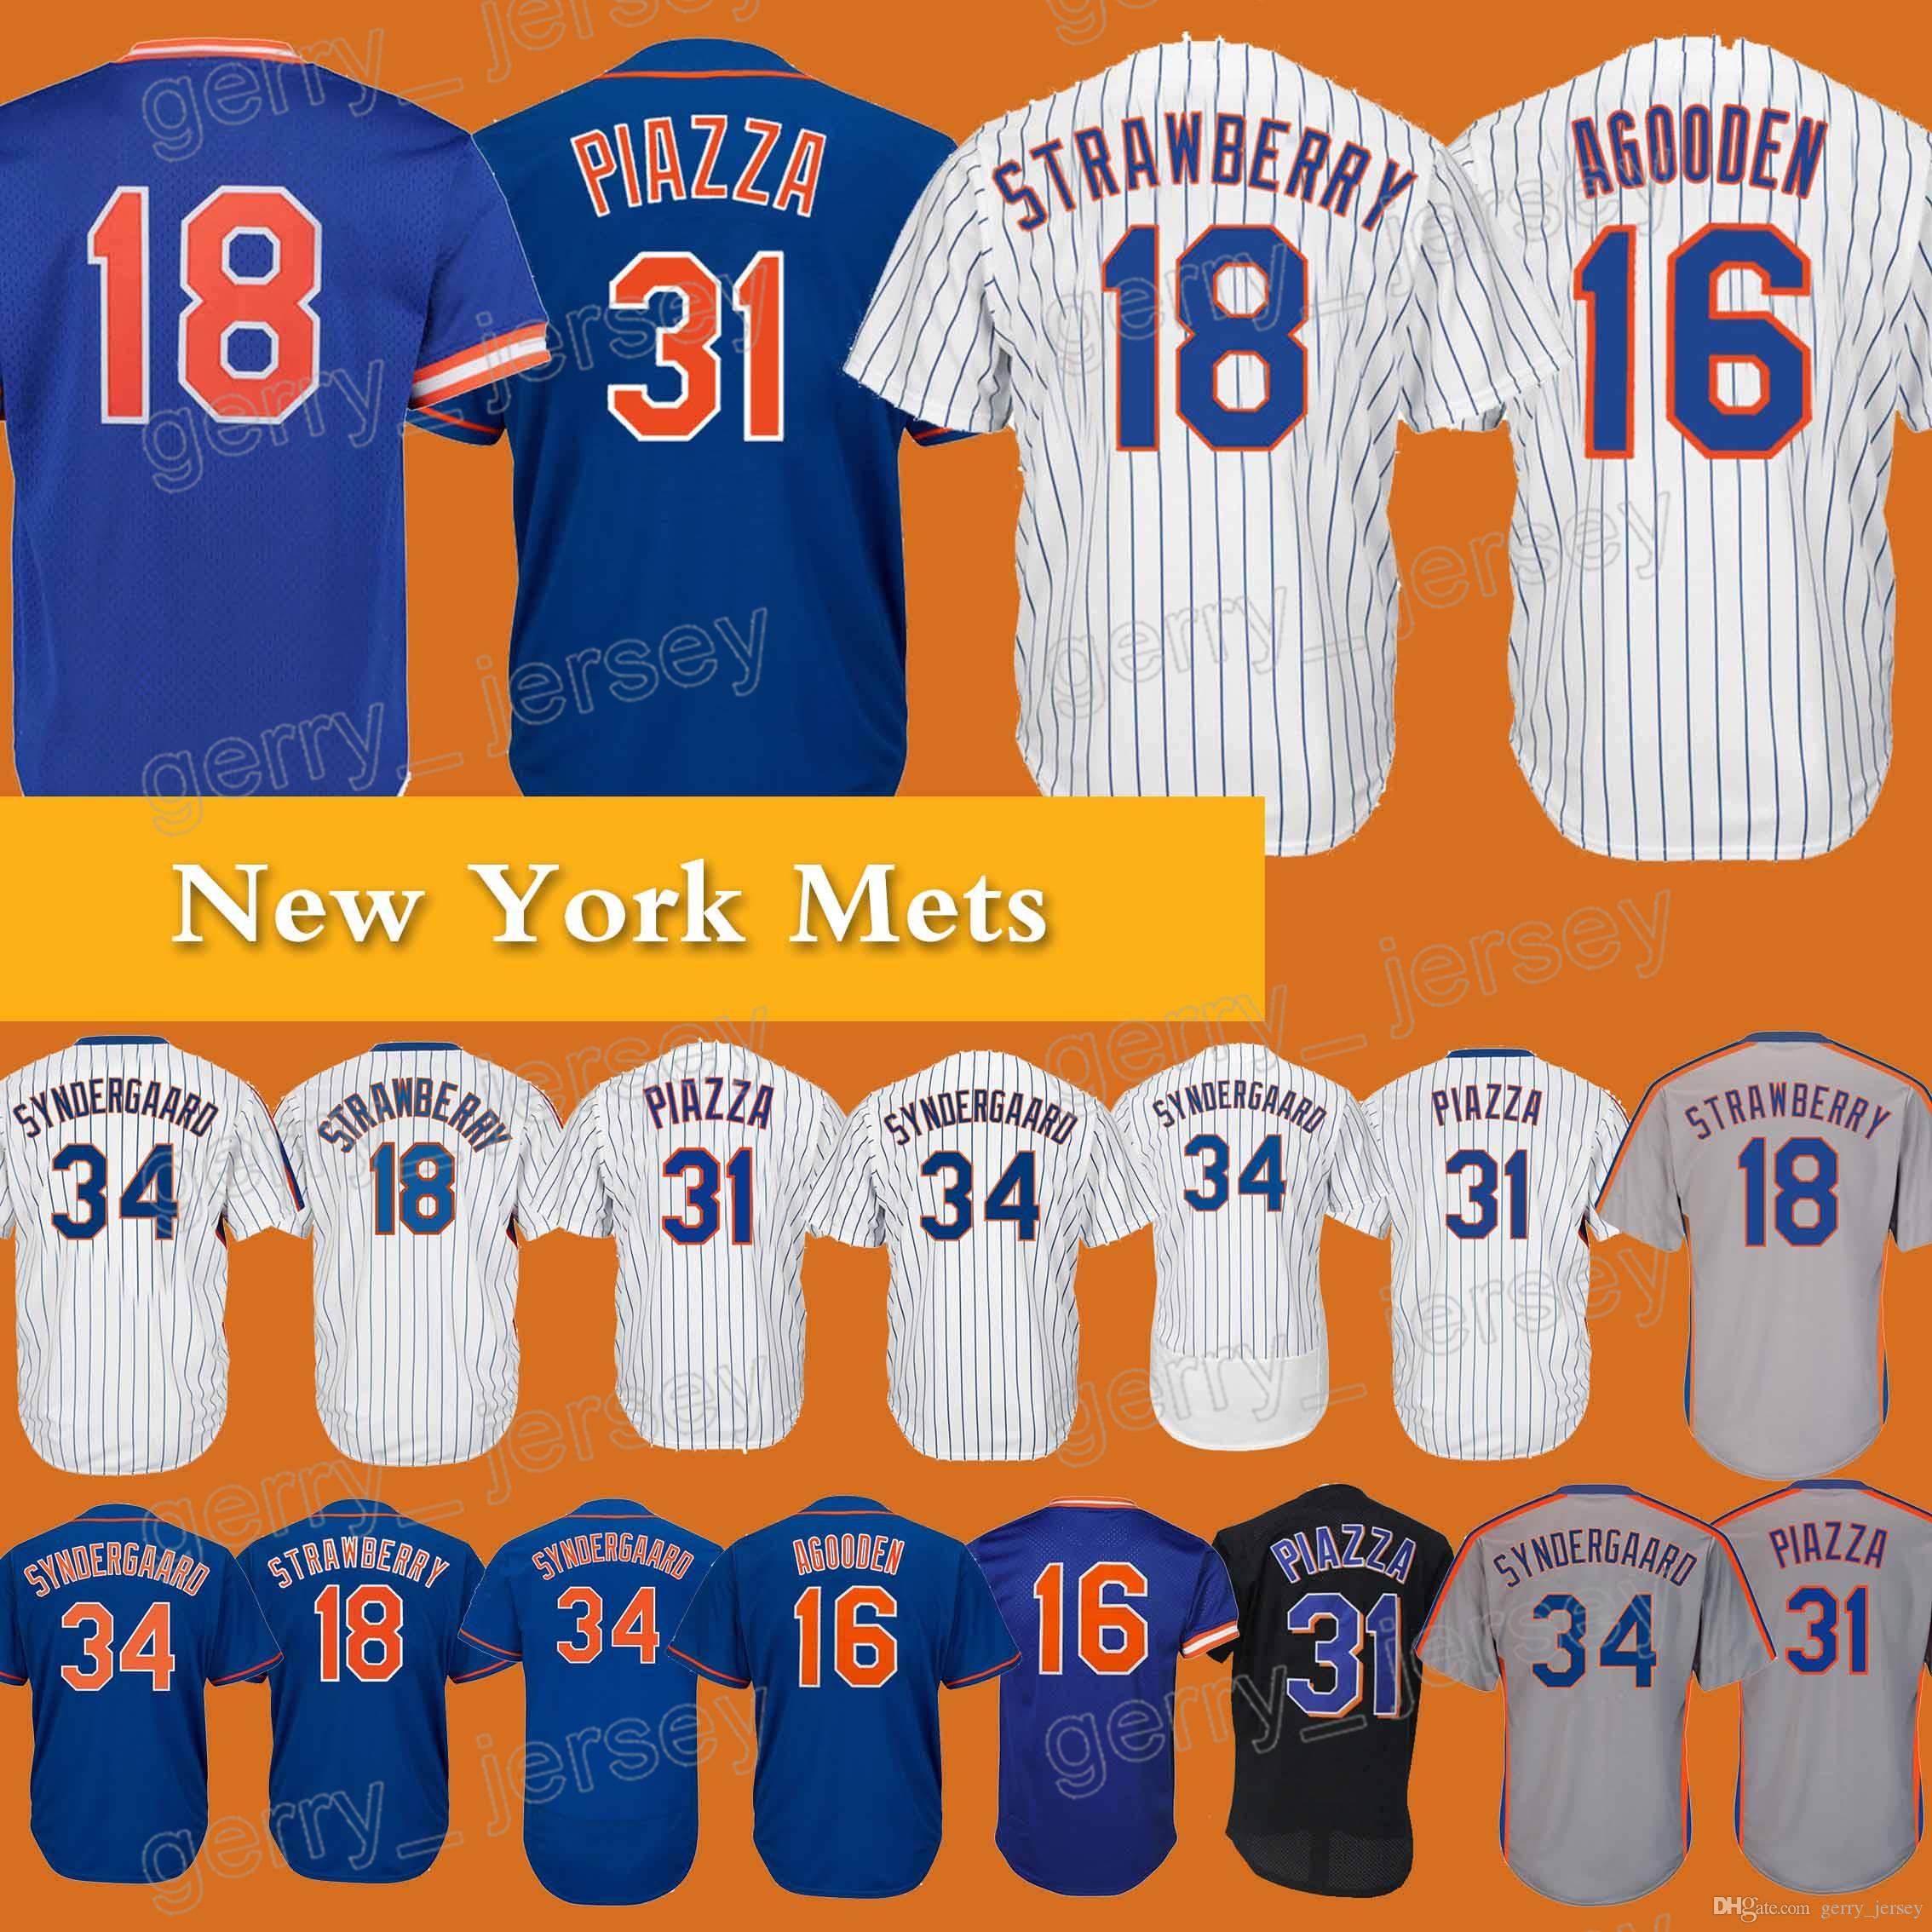 0bc0874da4e ... promo code for new york mets jersey 18 darryl strawberry 16 dwight  gooden 34 noah 31